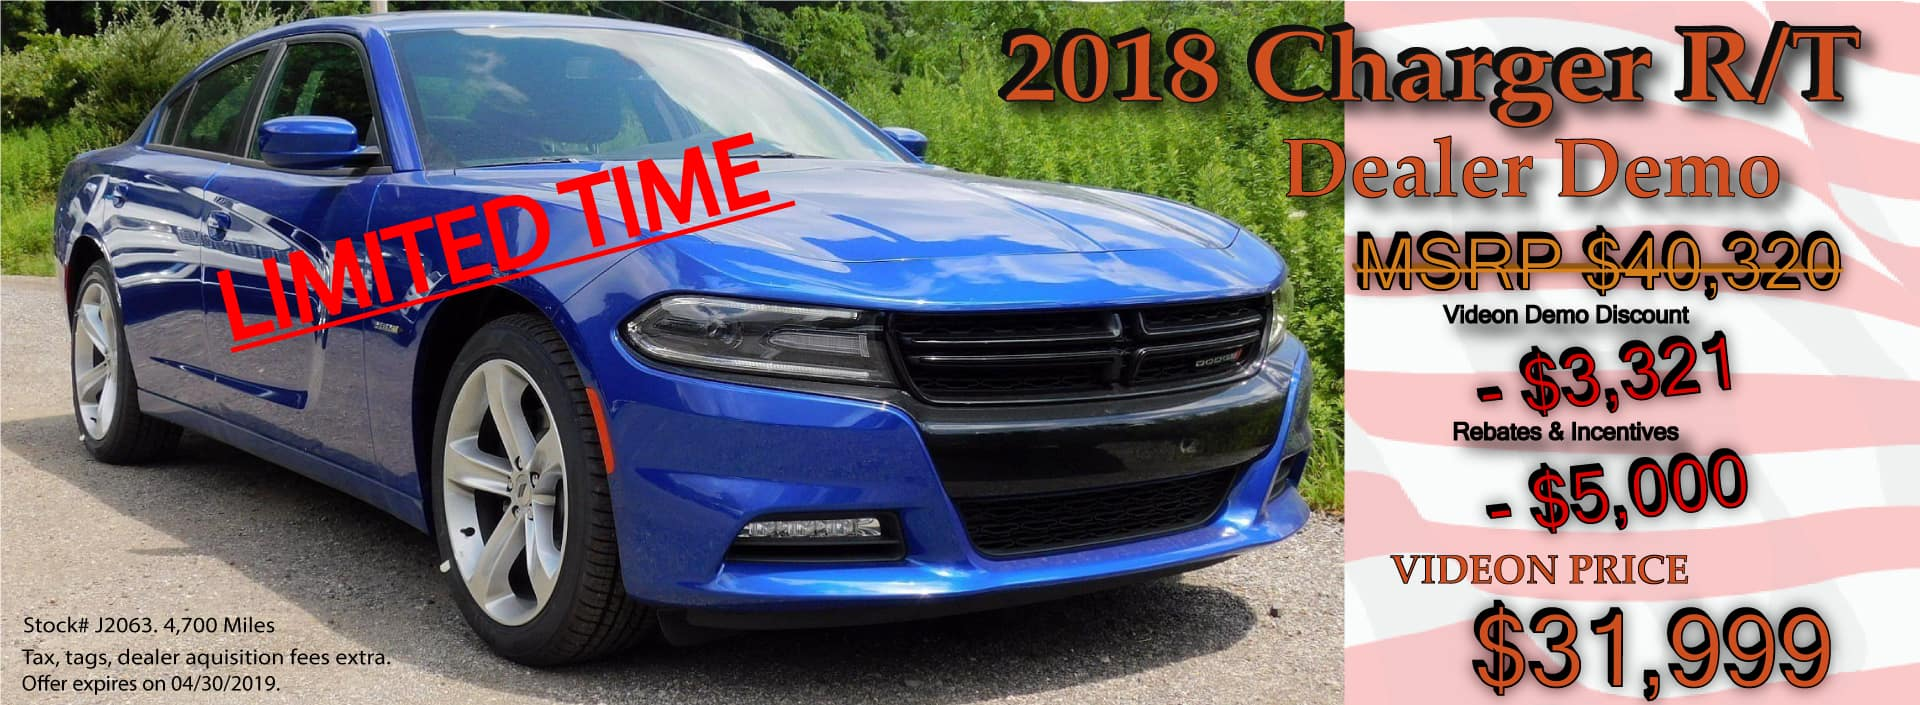 Charger RT Special Offer April 2019